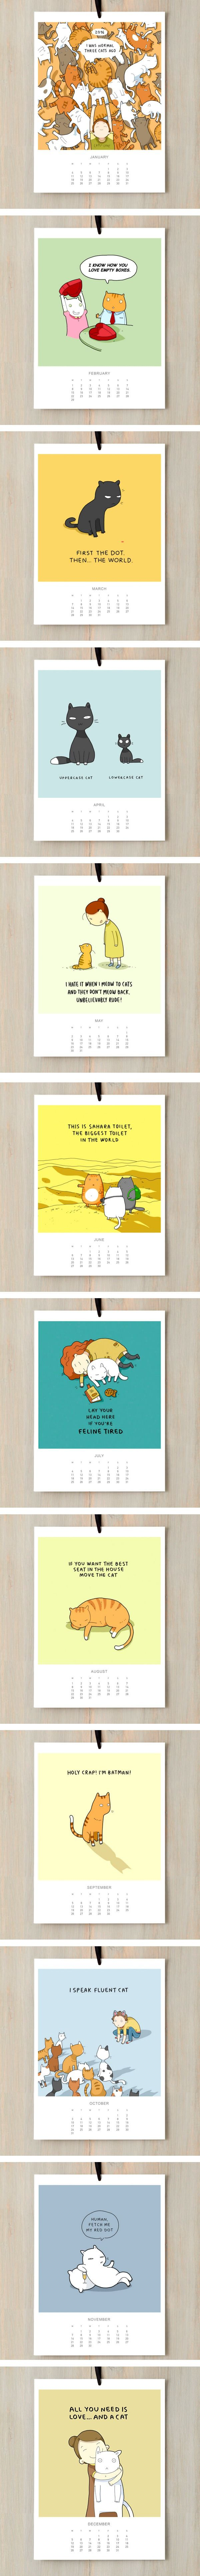 A Cat Calendar To Make You Smile All Year Round In 2016 (By Lingvistov)